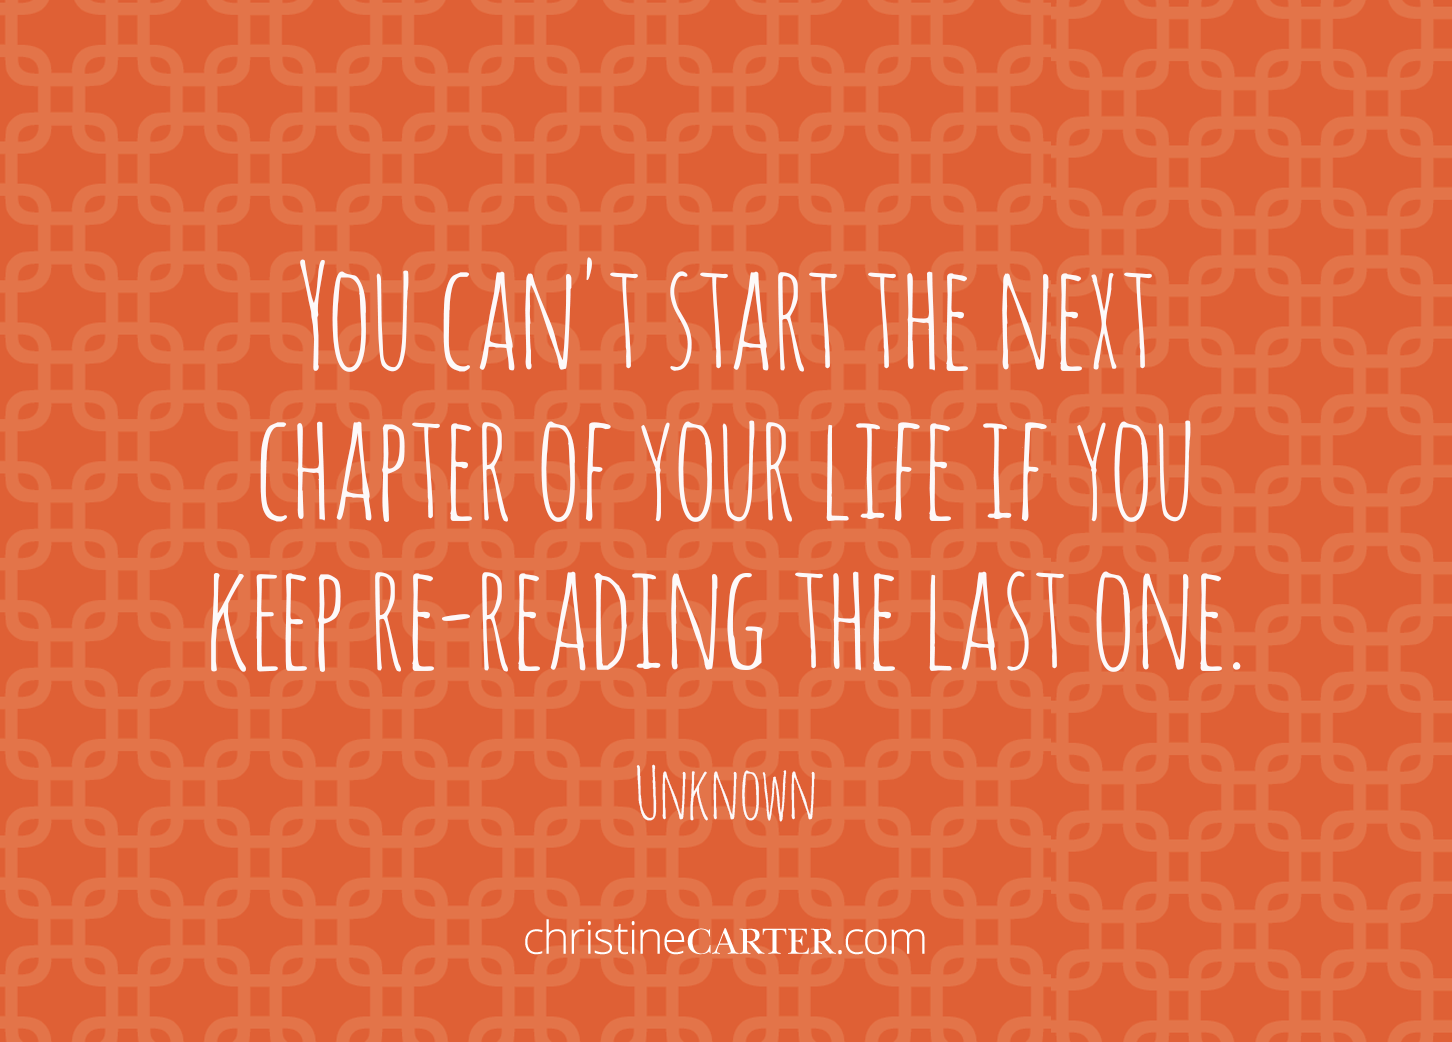 You can't start the next chapter of your life if you keep re-reading the last one. --Unknown